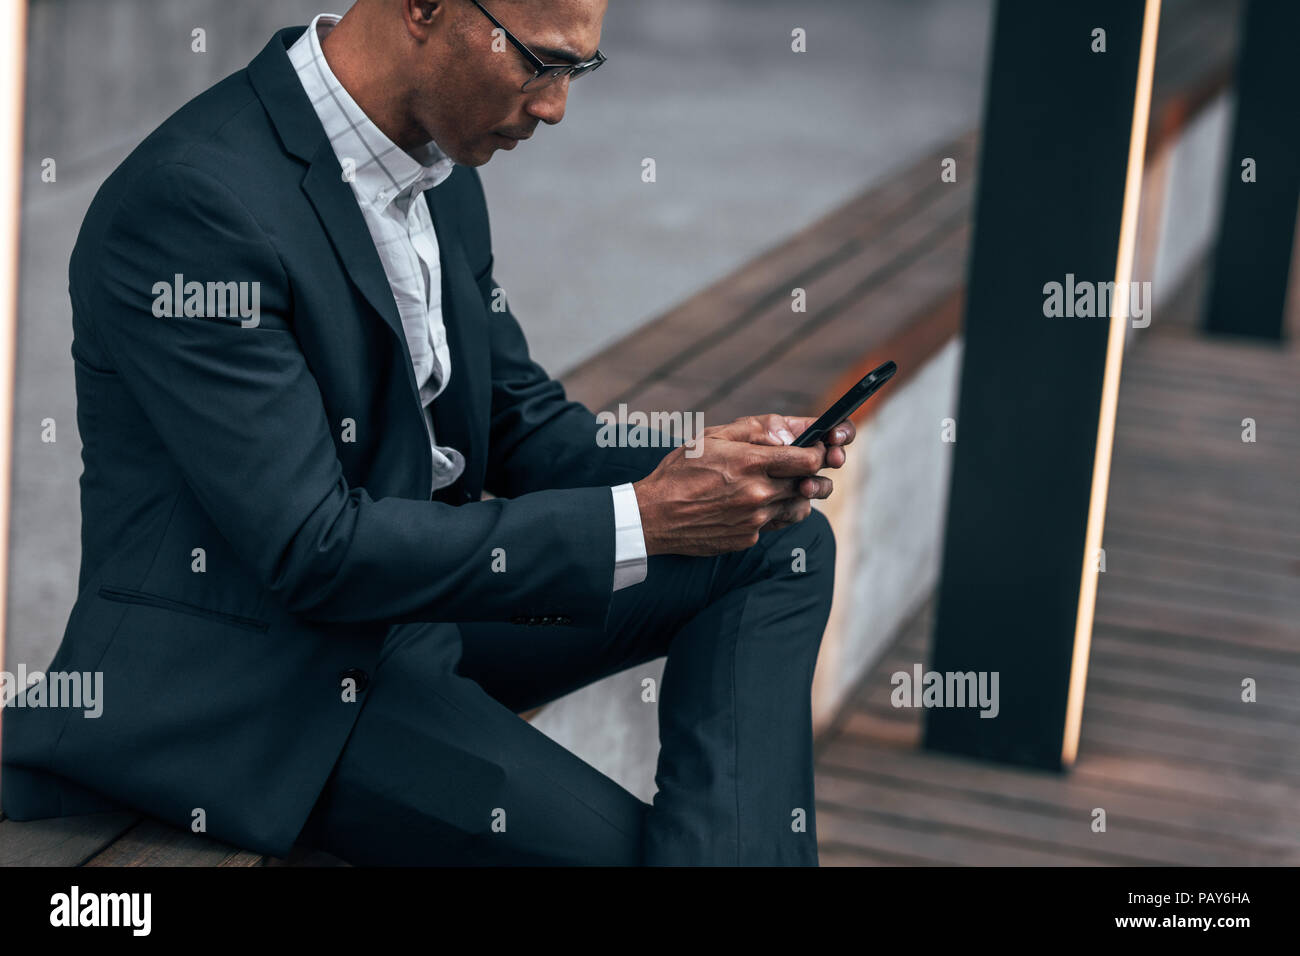 Entrepreneur typing text in mobile phone sitting on side railing outdoors. Businessman sitting outdoors managing work using cell phone. - Stock Image